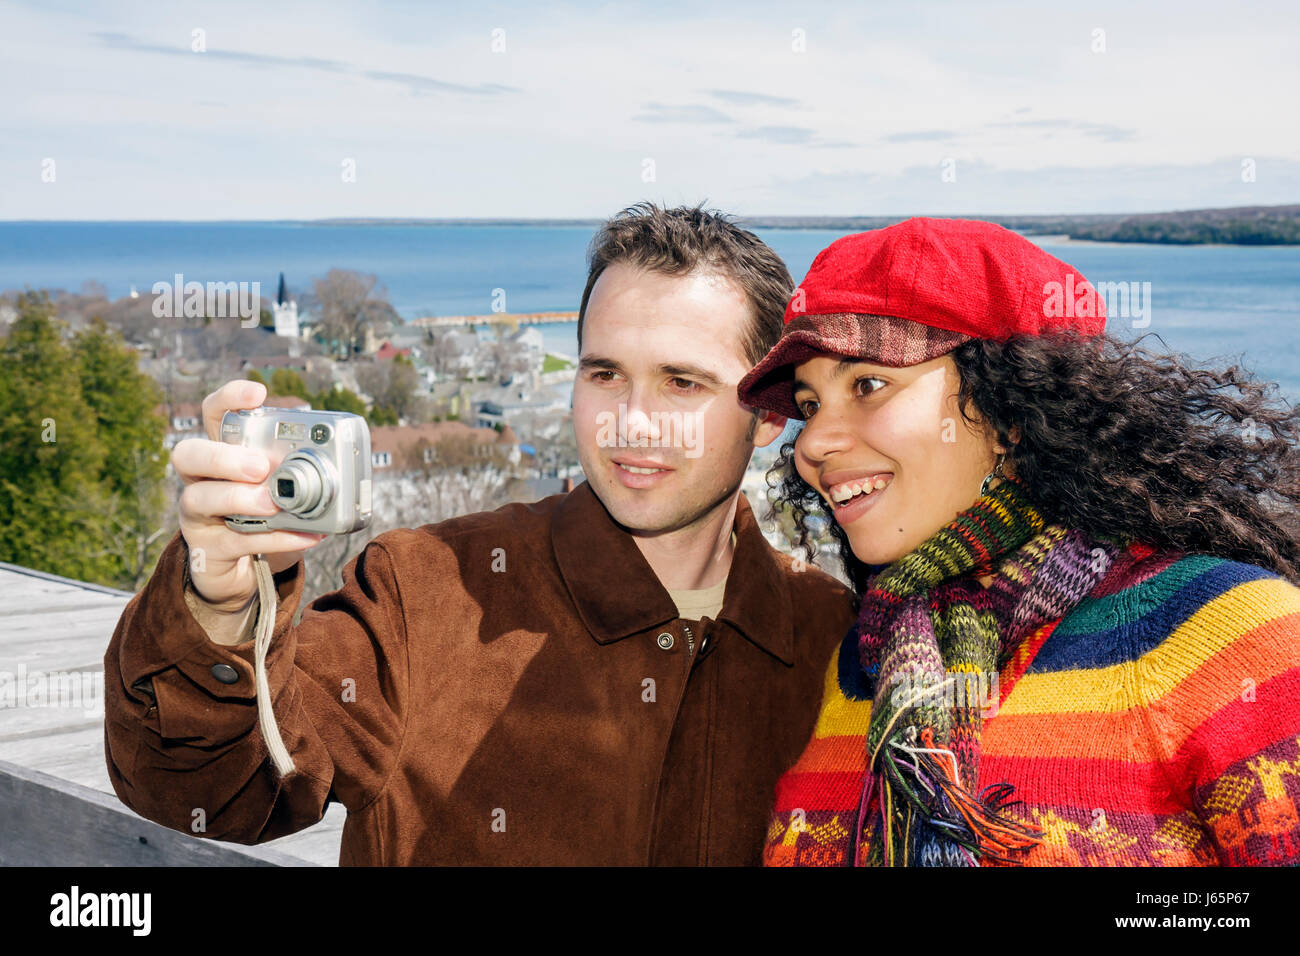 mackinac island single women Mackinac island's best free dating site 100% free online dating for mackinac island singles at mingle2com our free personal ads are full of single women and men in mackinac island looking.